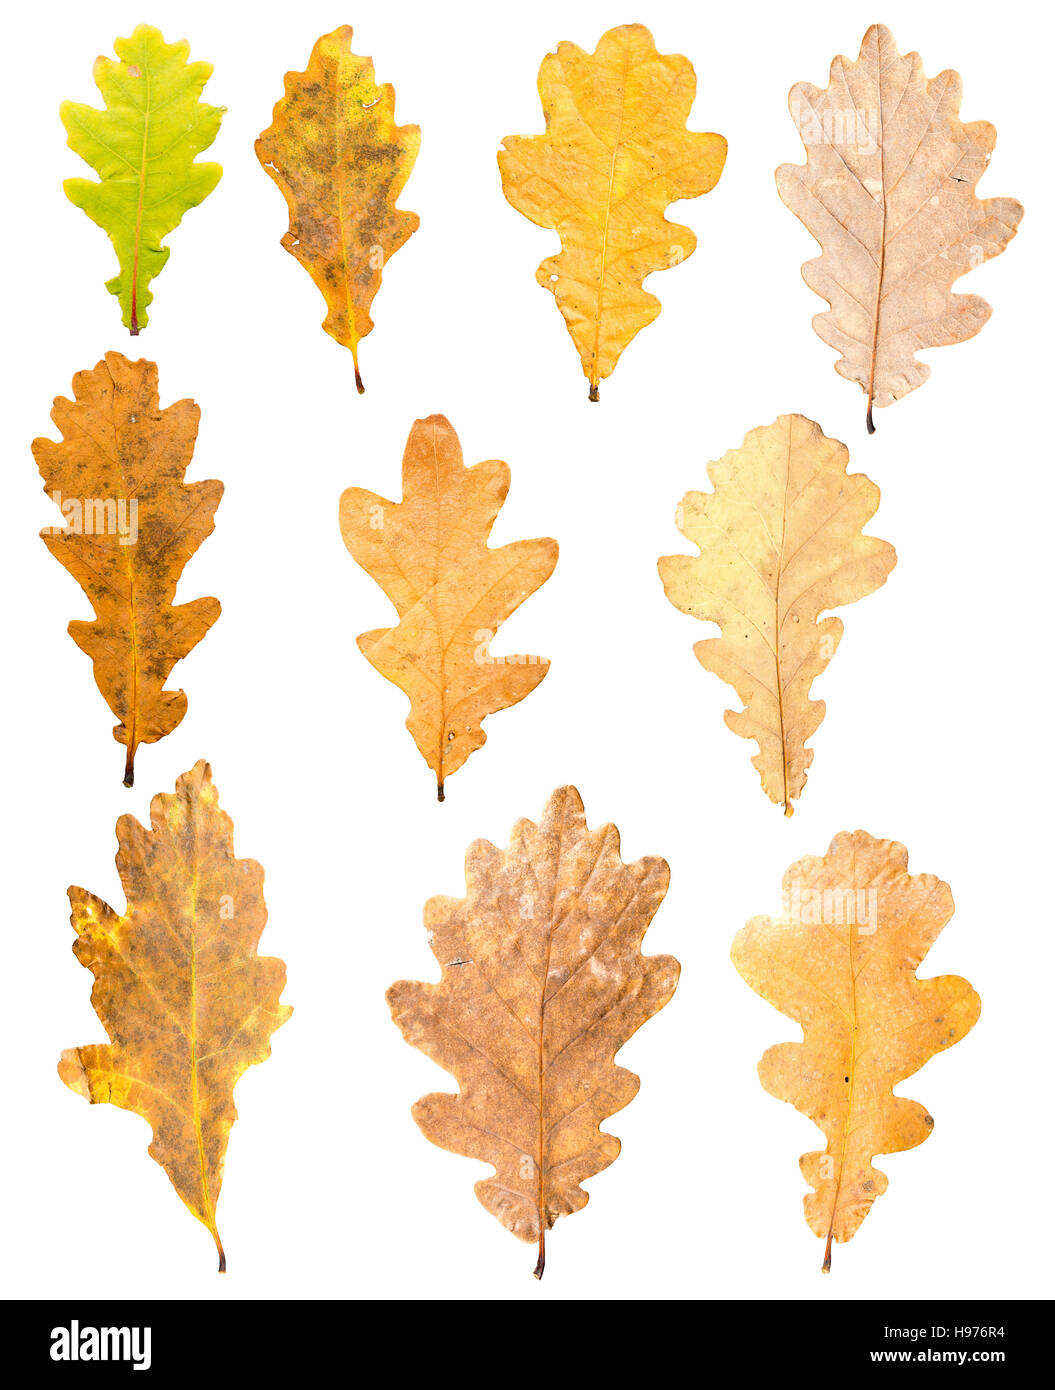 collection of oak leaves in different stades of withering isolated